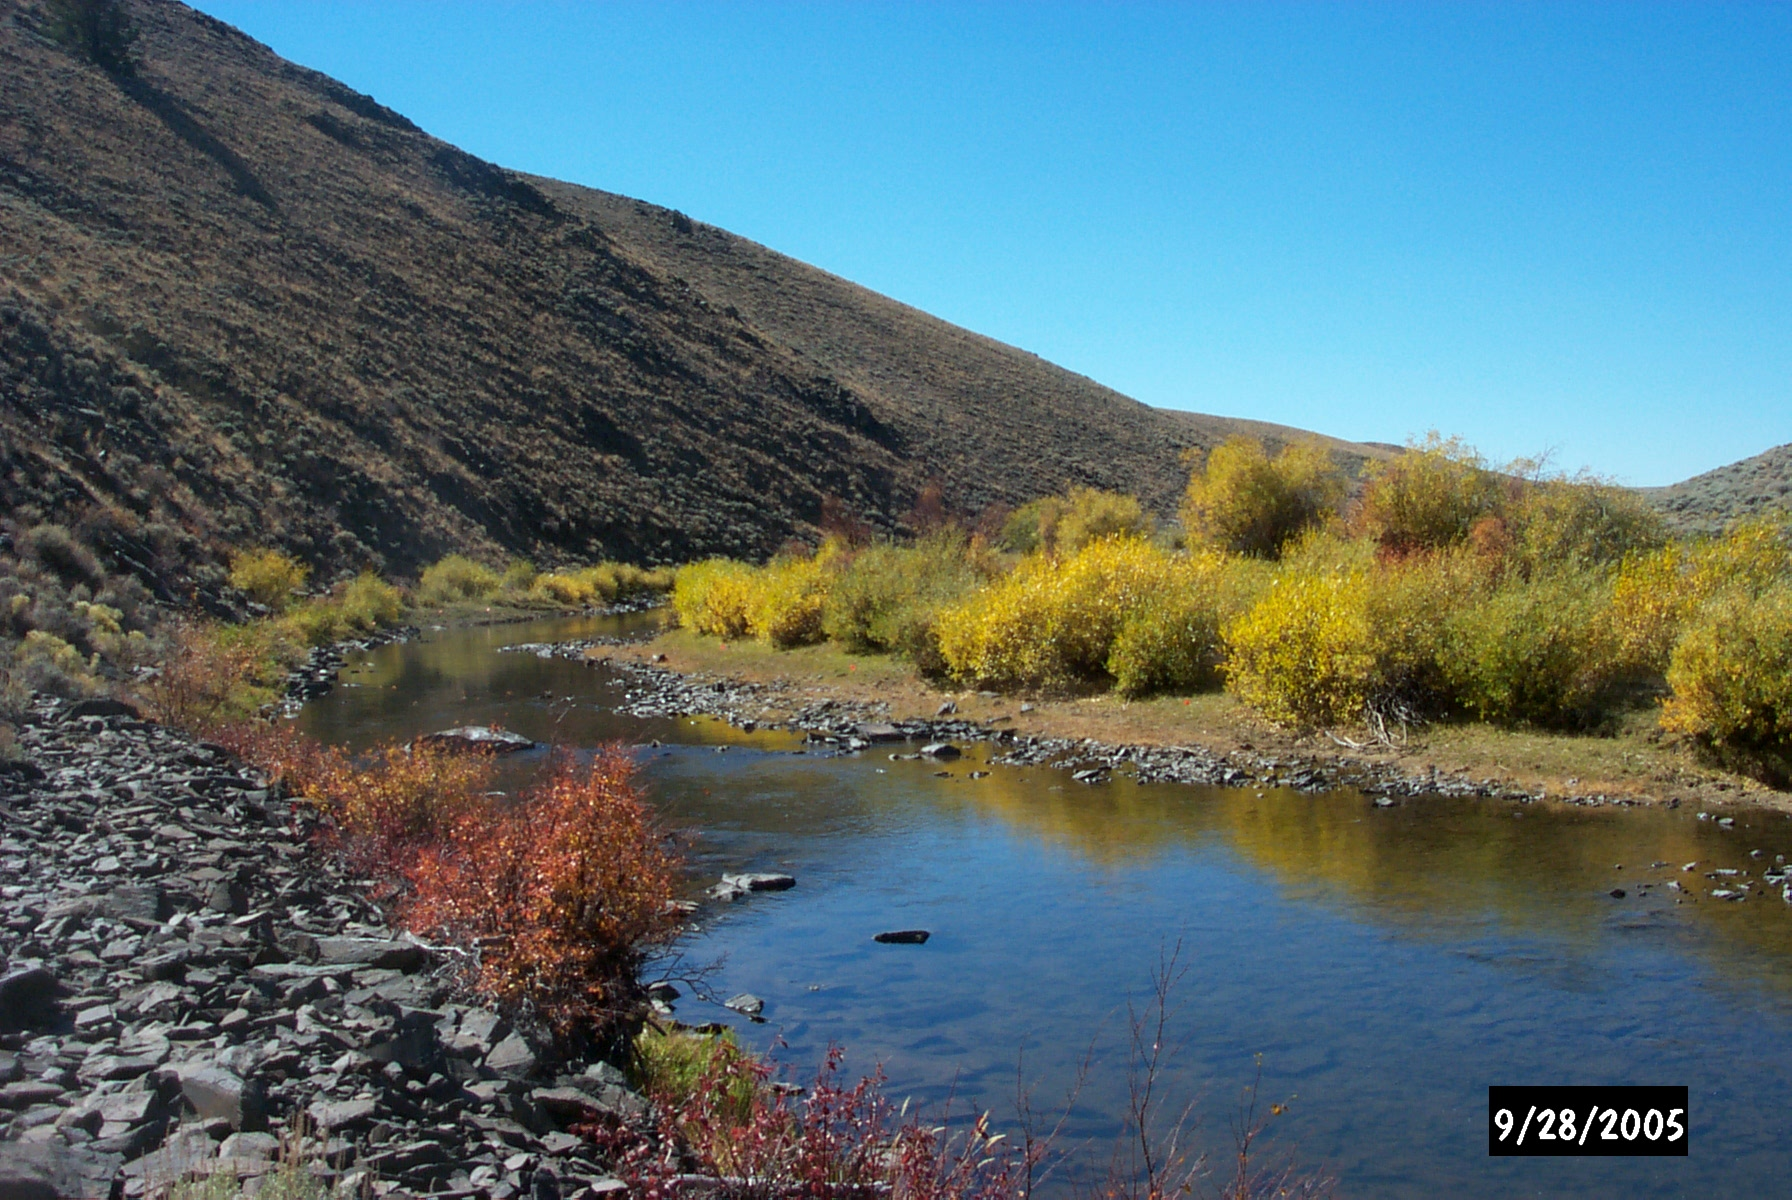 Wyoming Game and Fish Department - Sweetwater River